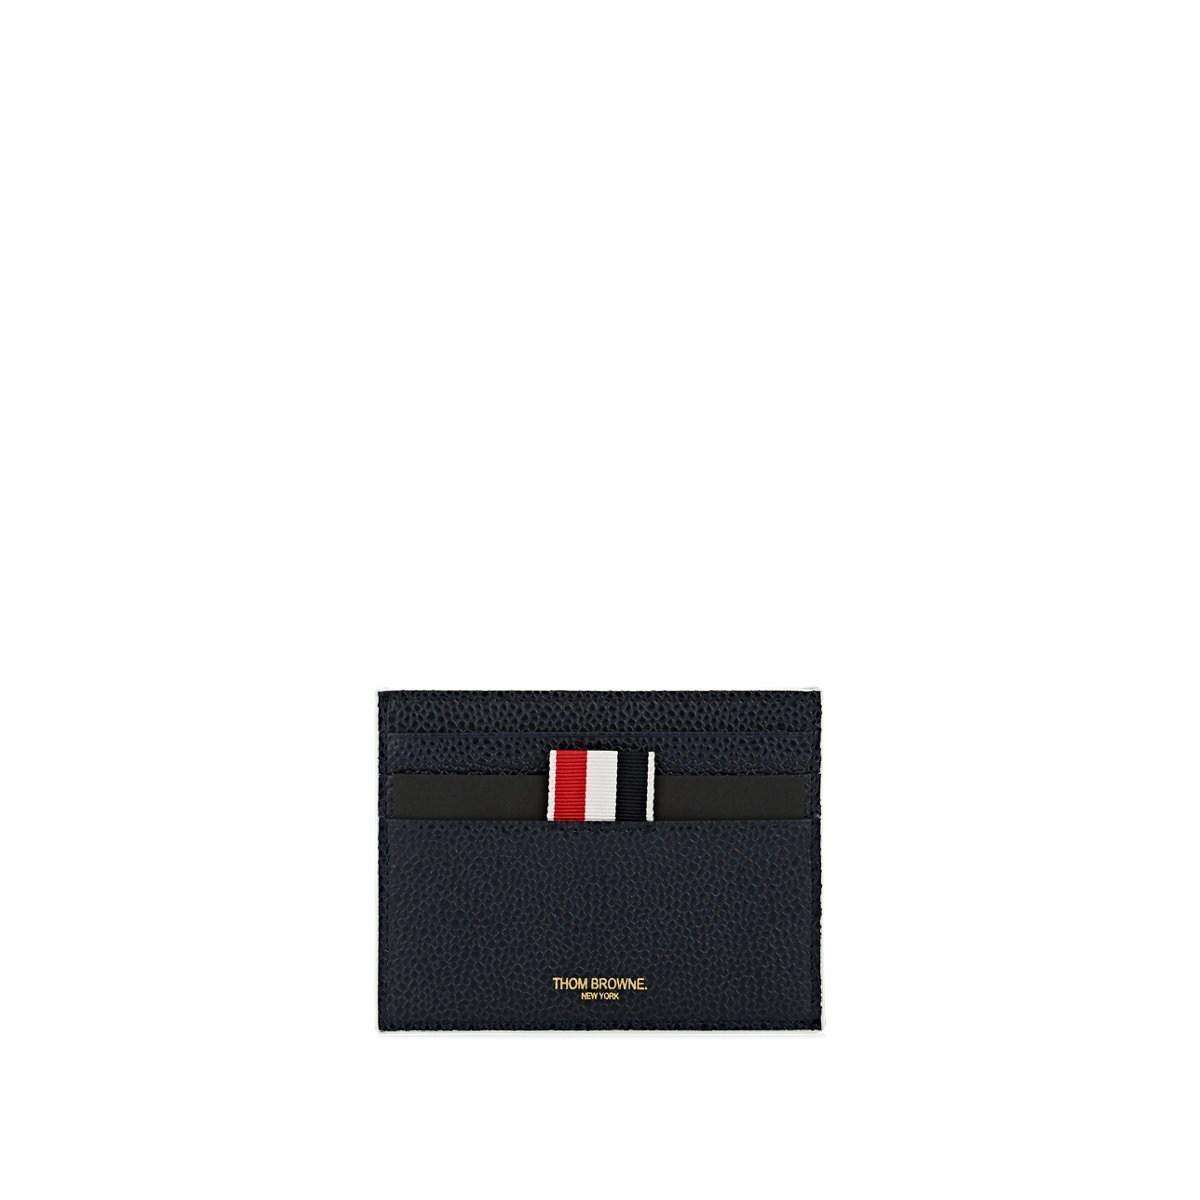 615c6838a47 Lyst - Thom Browne Note-compartment Leather Card Case in Blue for Men